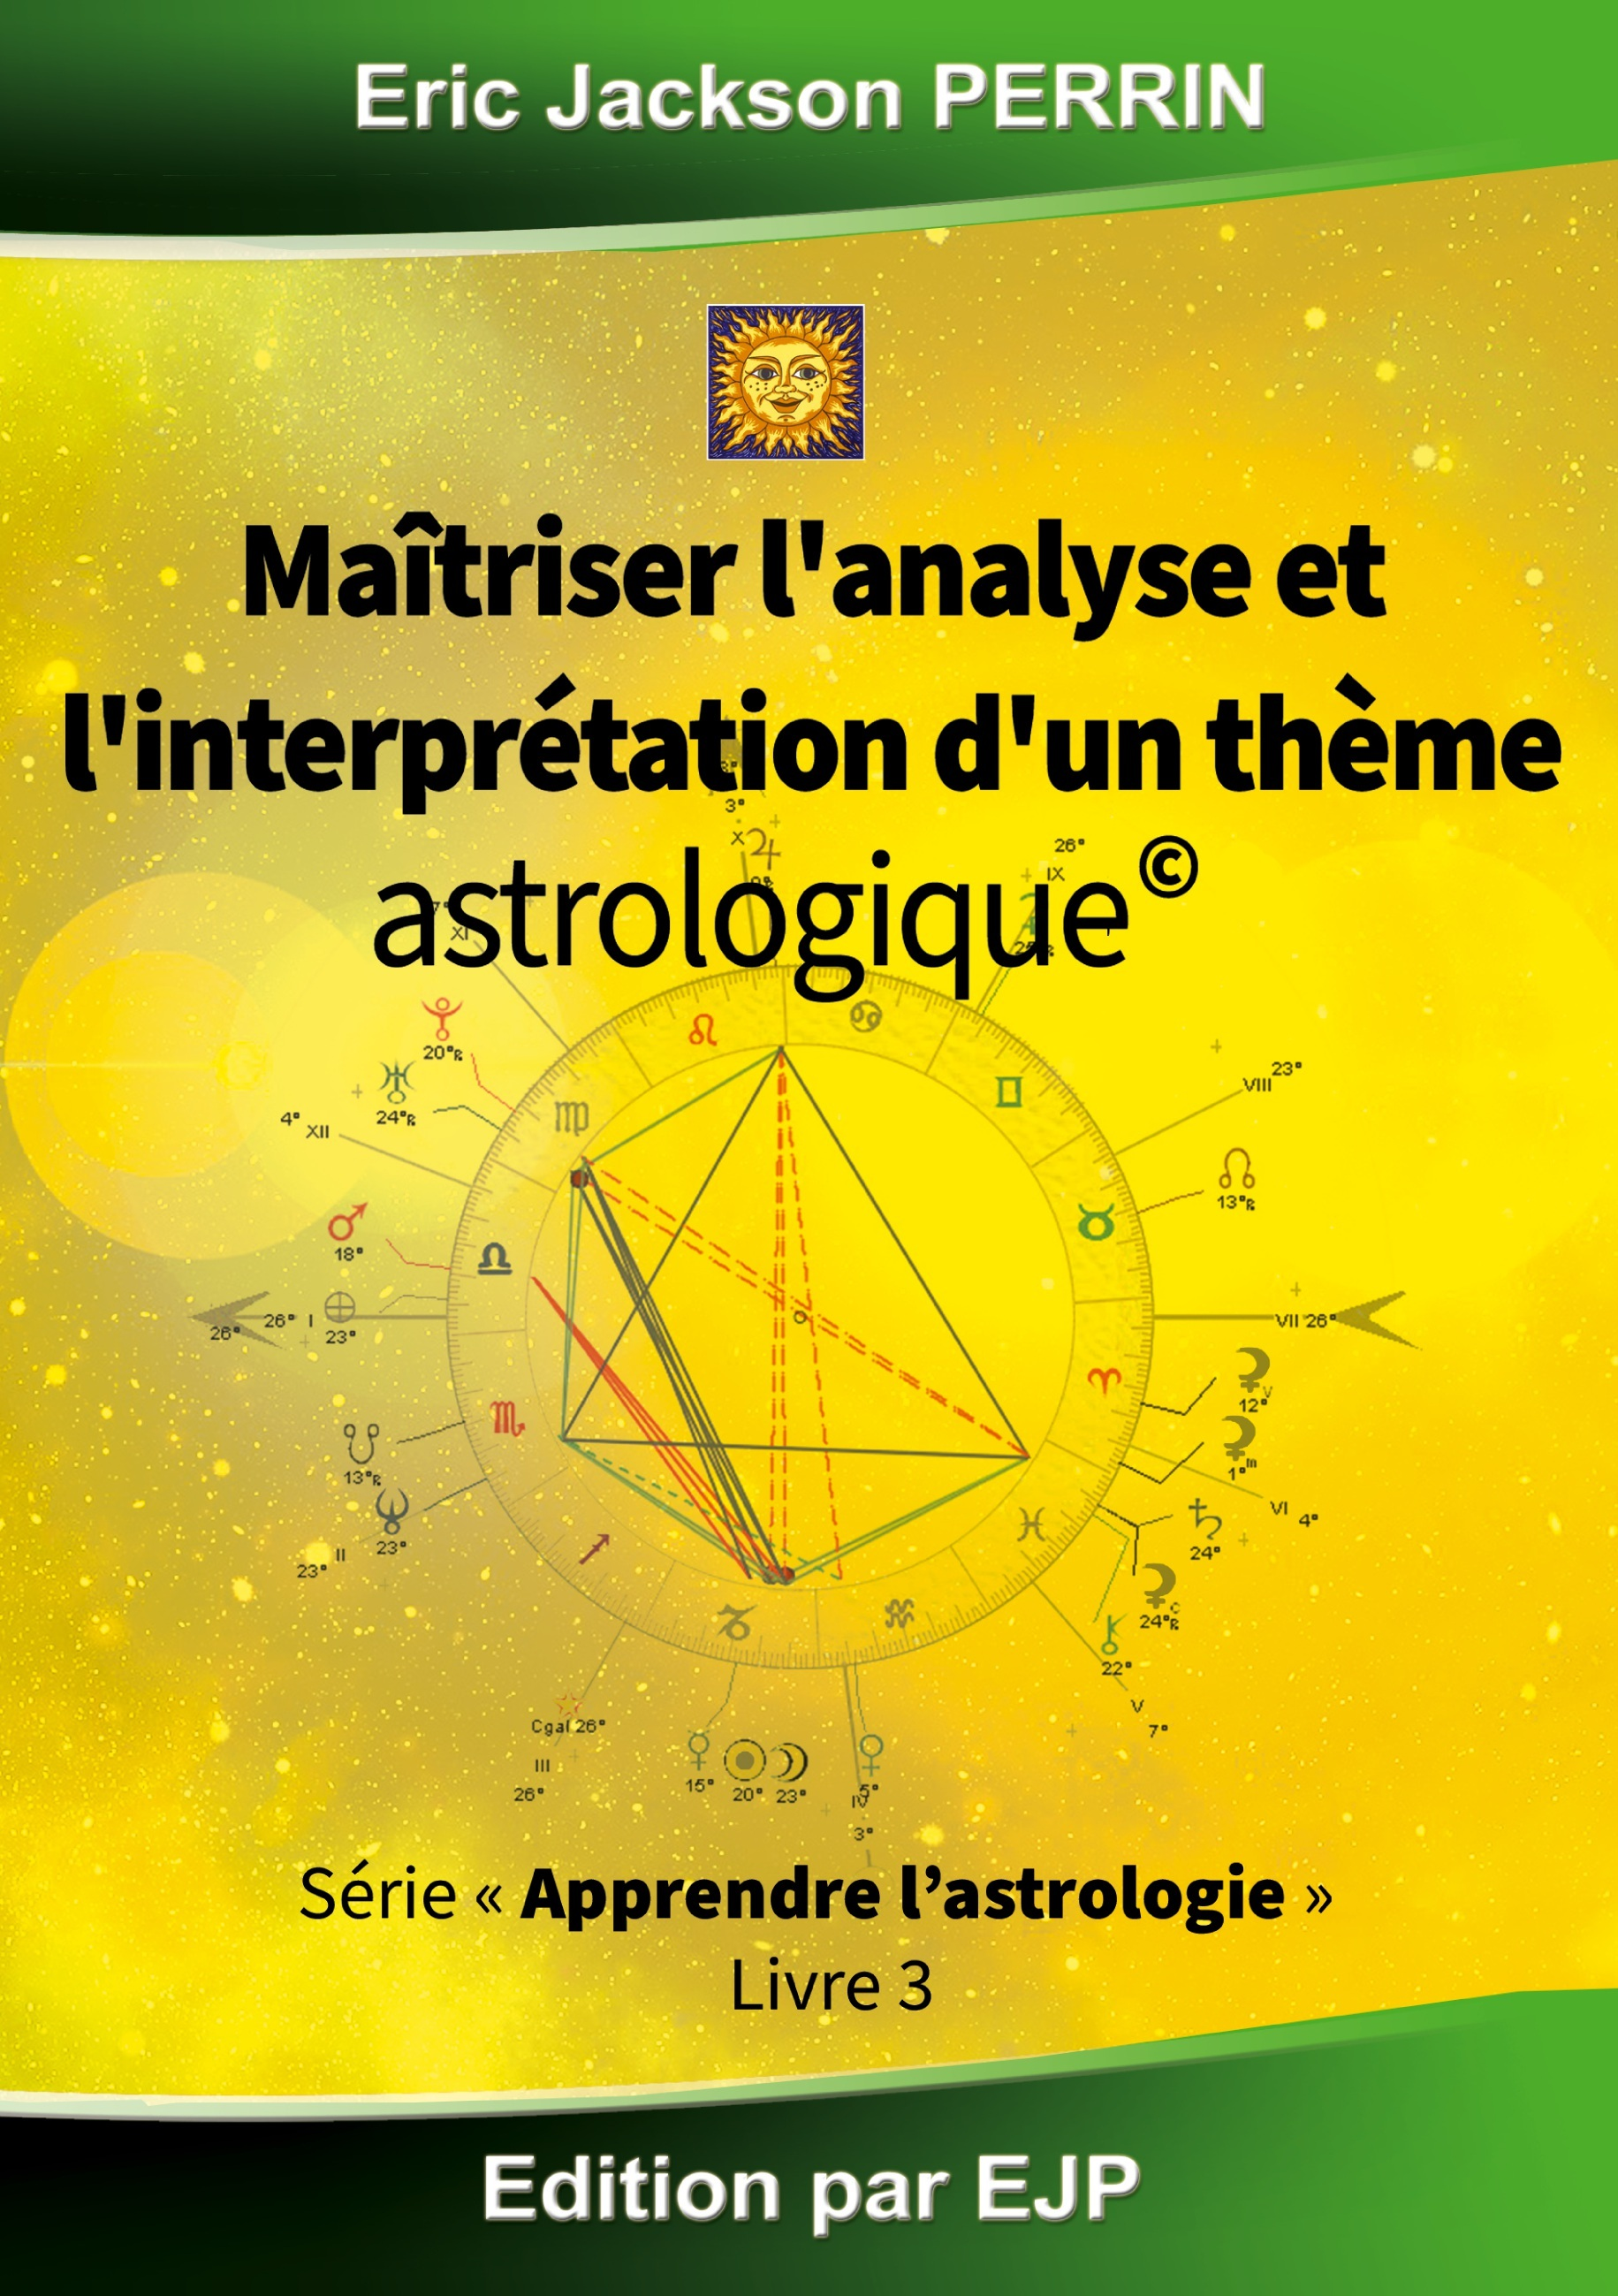 ASTROLOGIE LIVRE 3 : MAITRISER L'ANALYSE ET L'INTERPRETATION D'UN THEME ASTROLOGIQUE